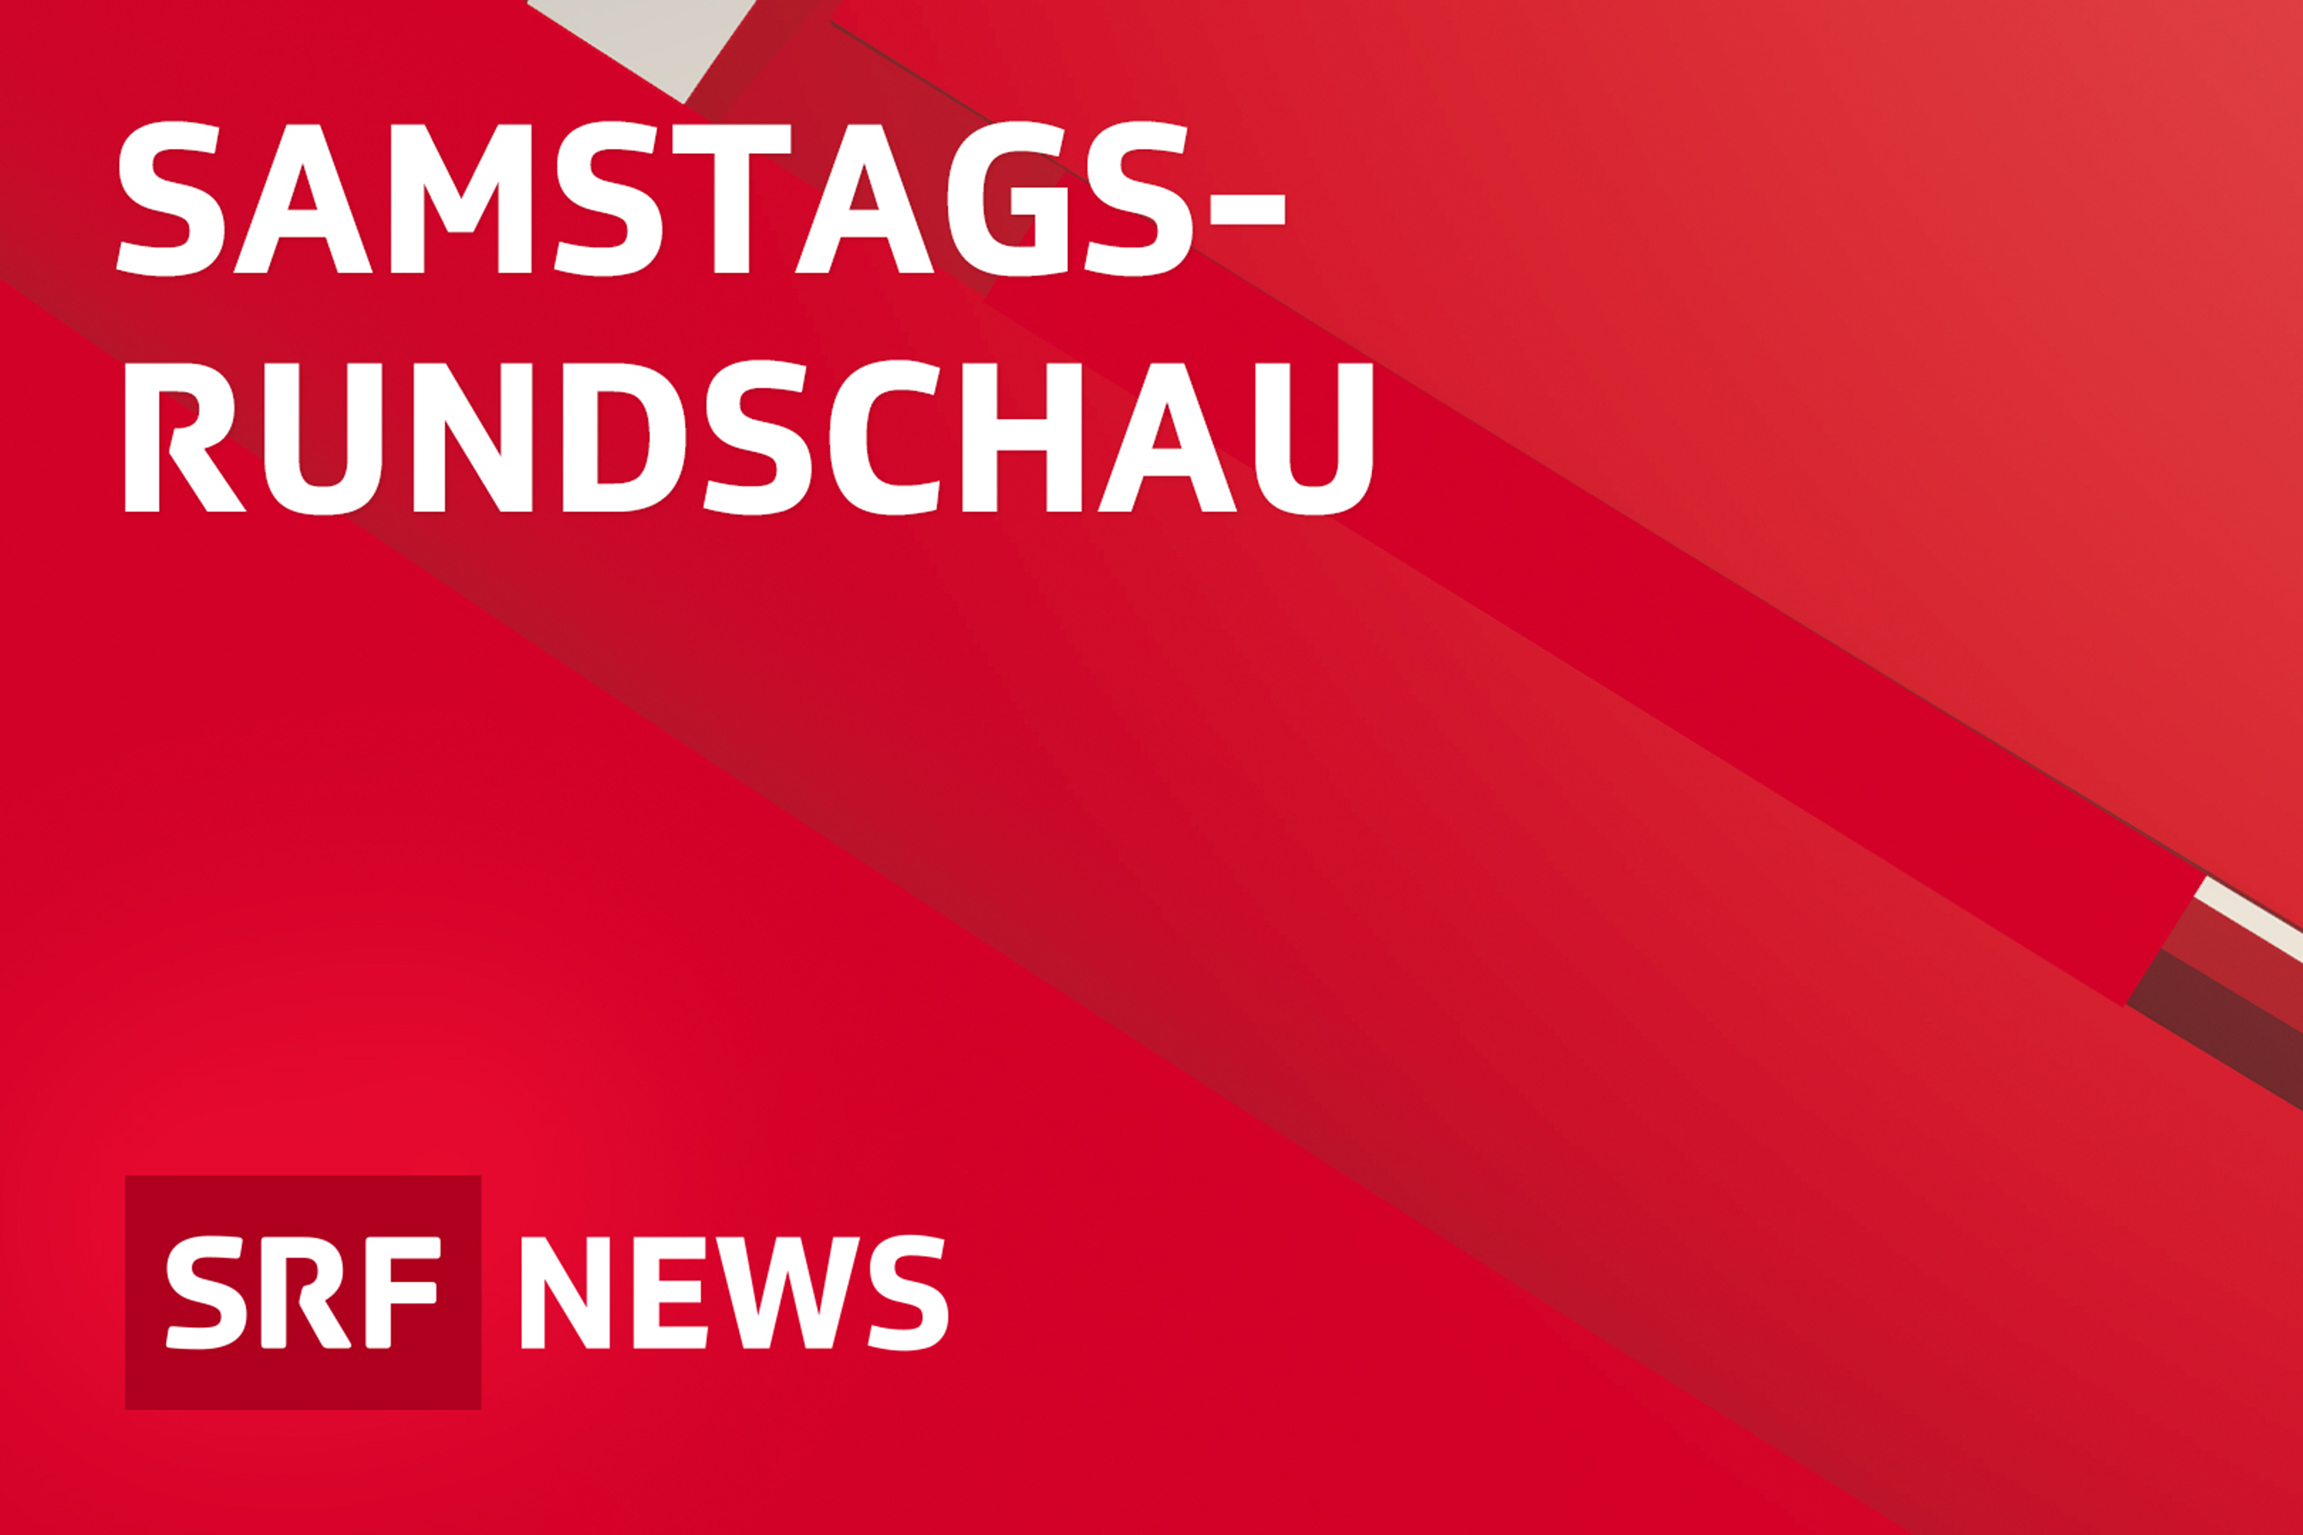 Samstagsrundschau Radio SRF 4 News